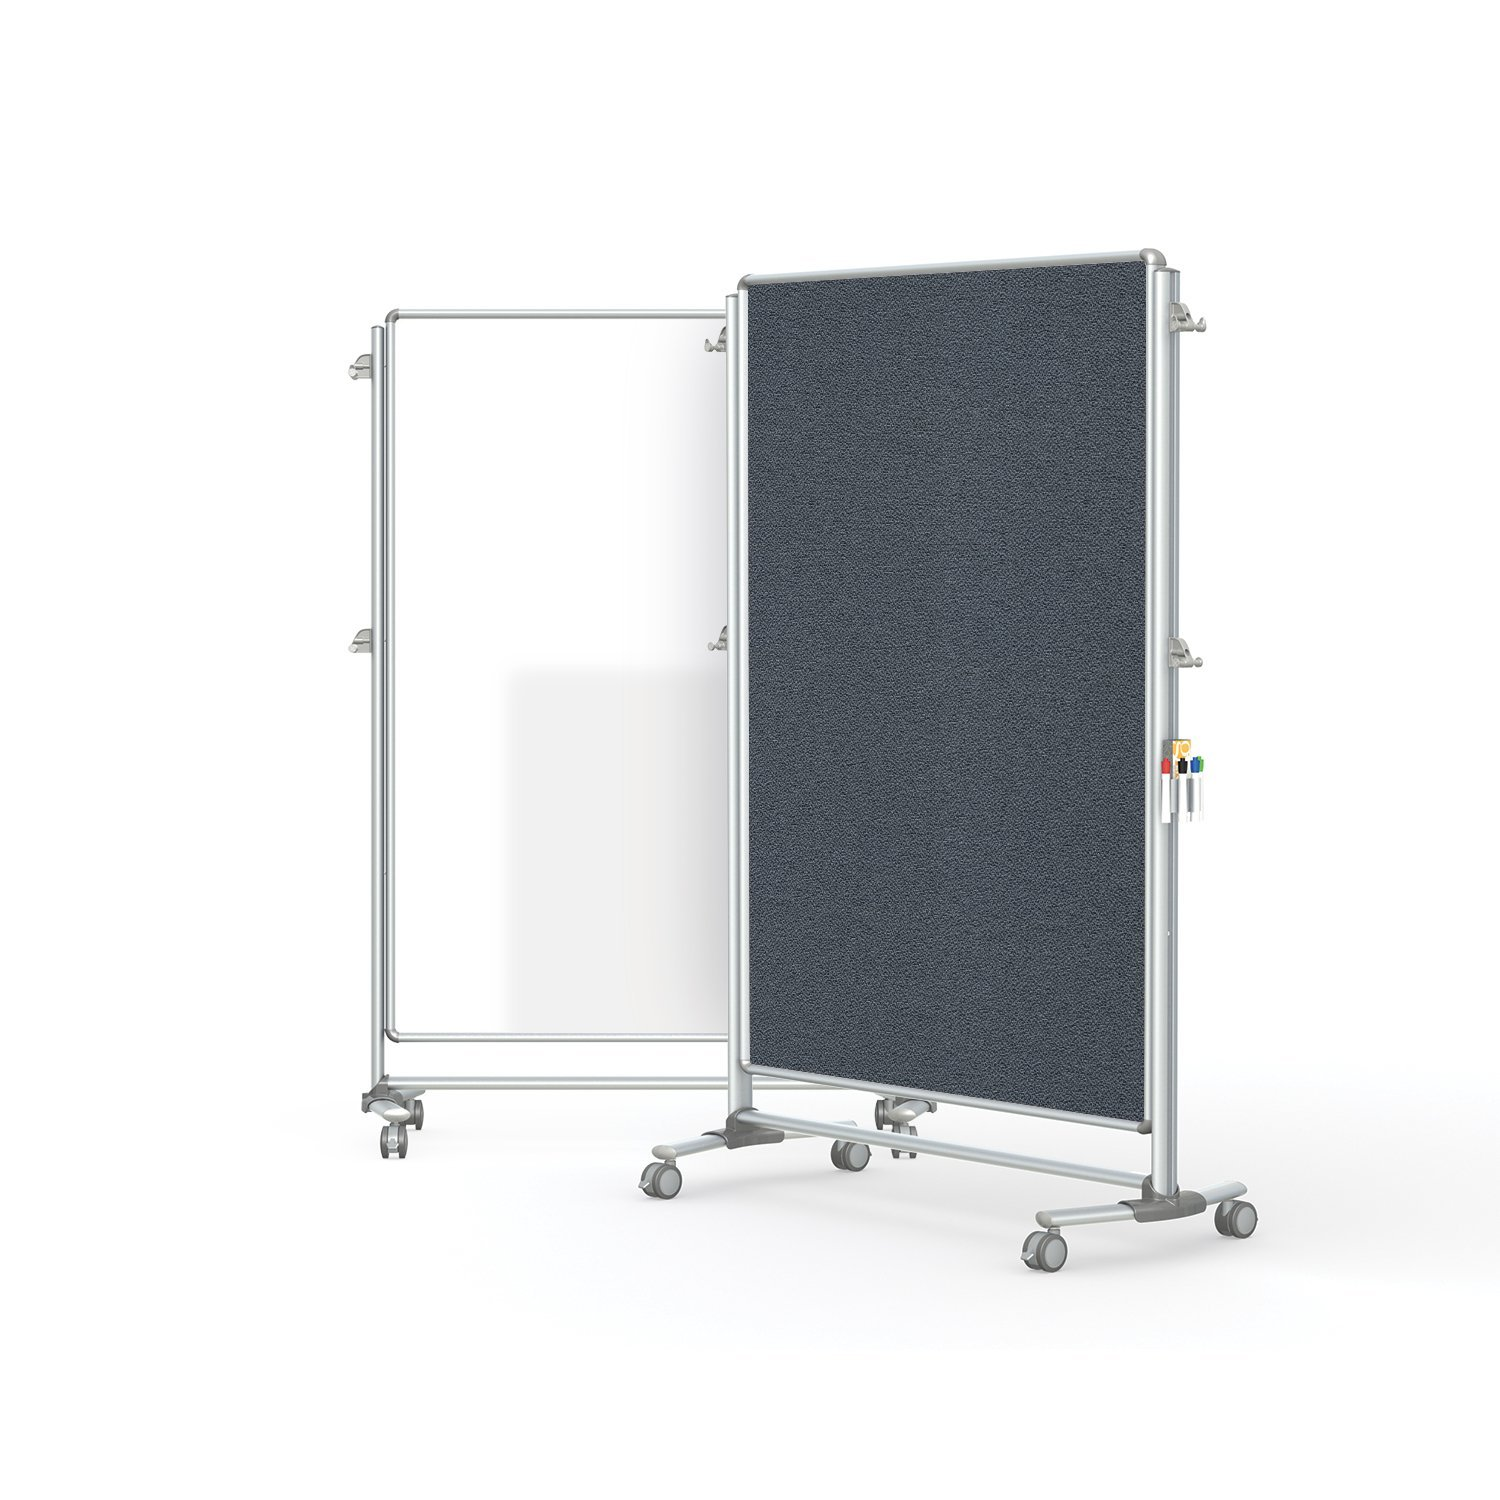 "Ghent 76-1/8"" x 52-3/8"" Nexus Partition, Magnetic Whiteboard/Bulletin Board, Double-Sided, Gray (NEX224MFP-91)"